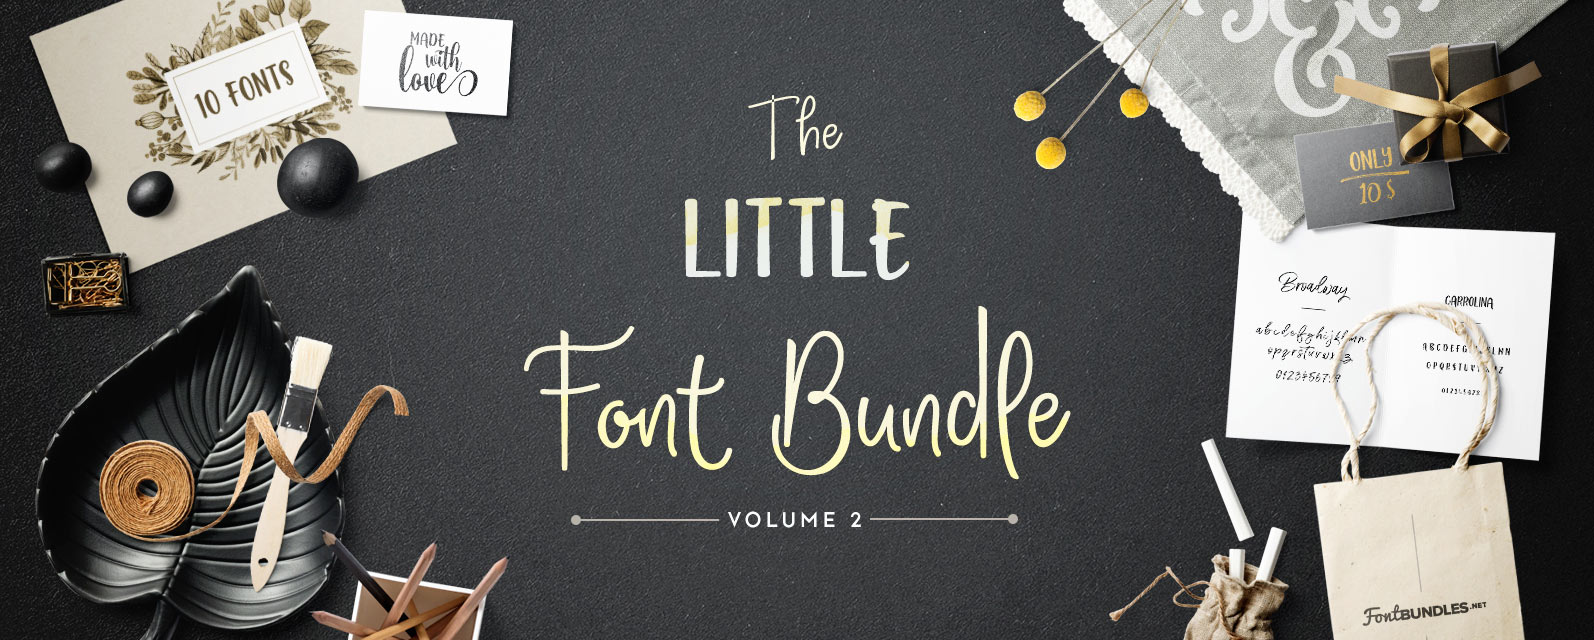 The Little Font Bundle Volume II Cover